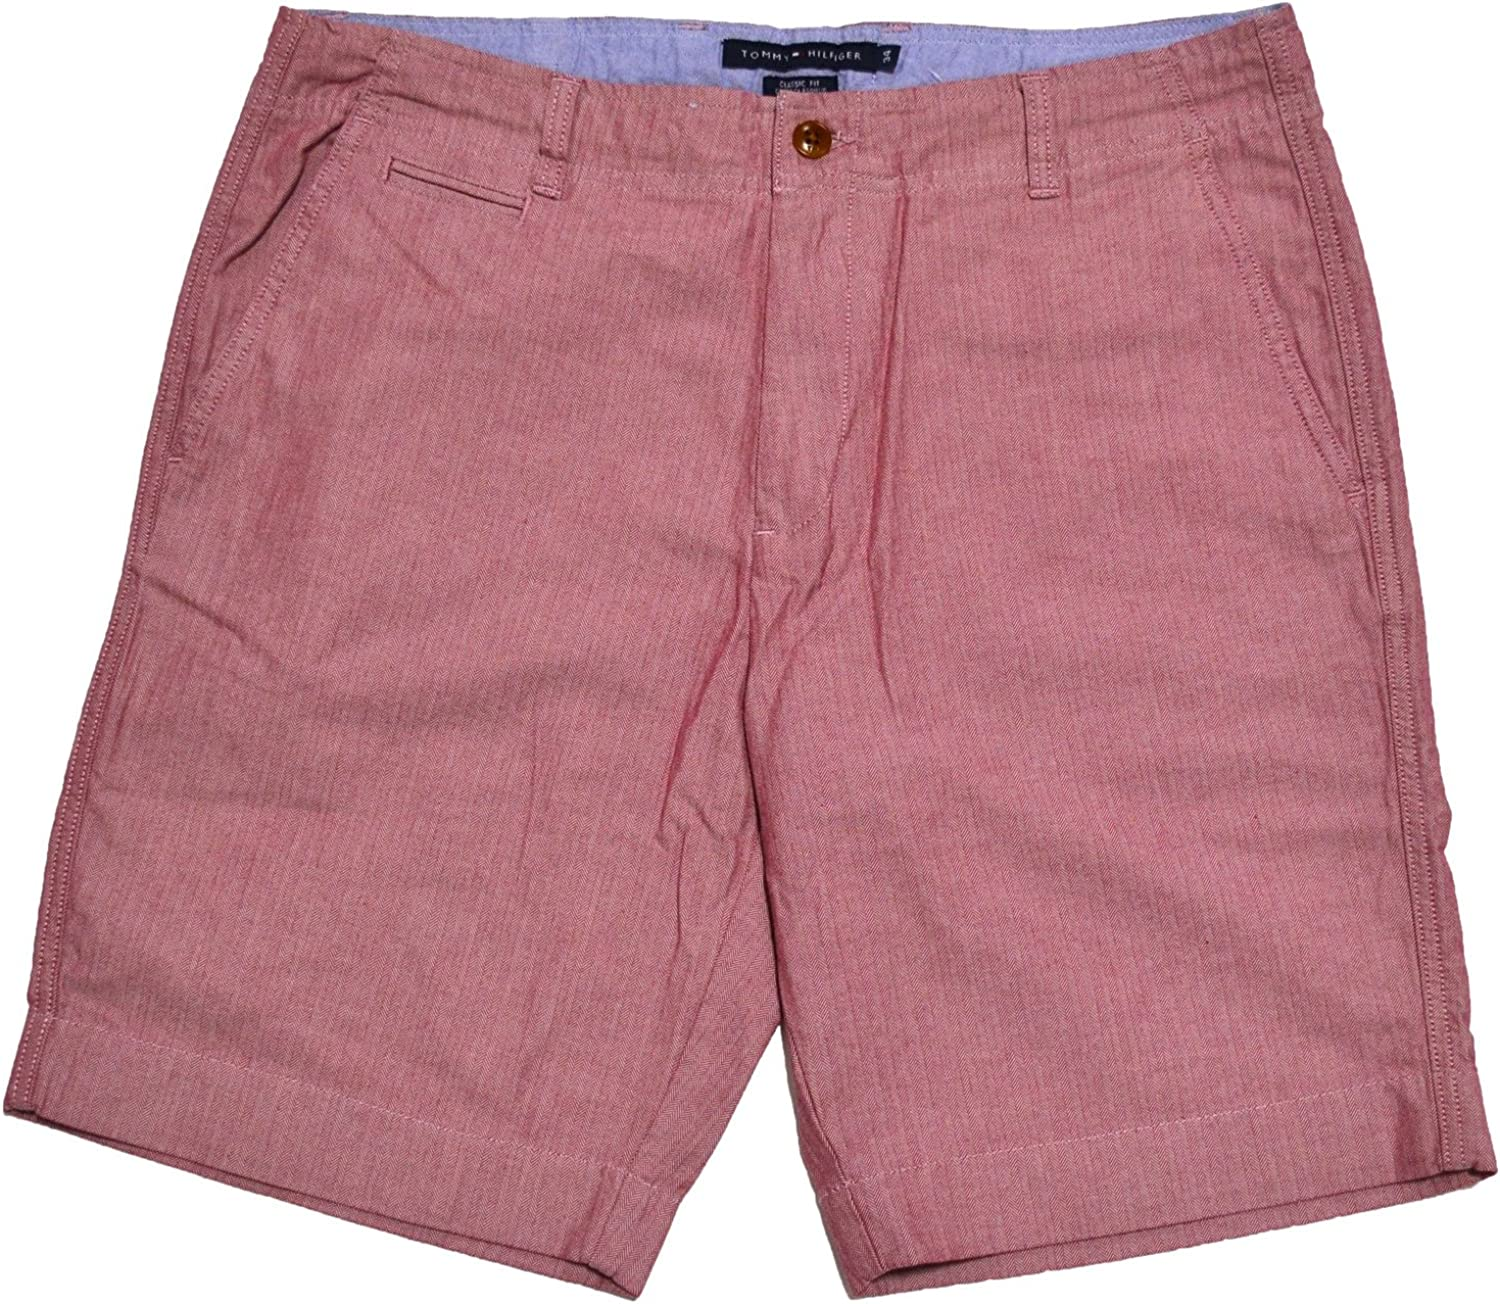 Tommy Hilfiger Men's Academy Flat Front Beet Short Red Chino free shipping Super-cheap